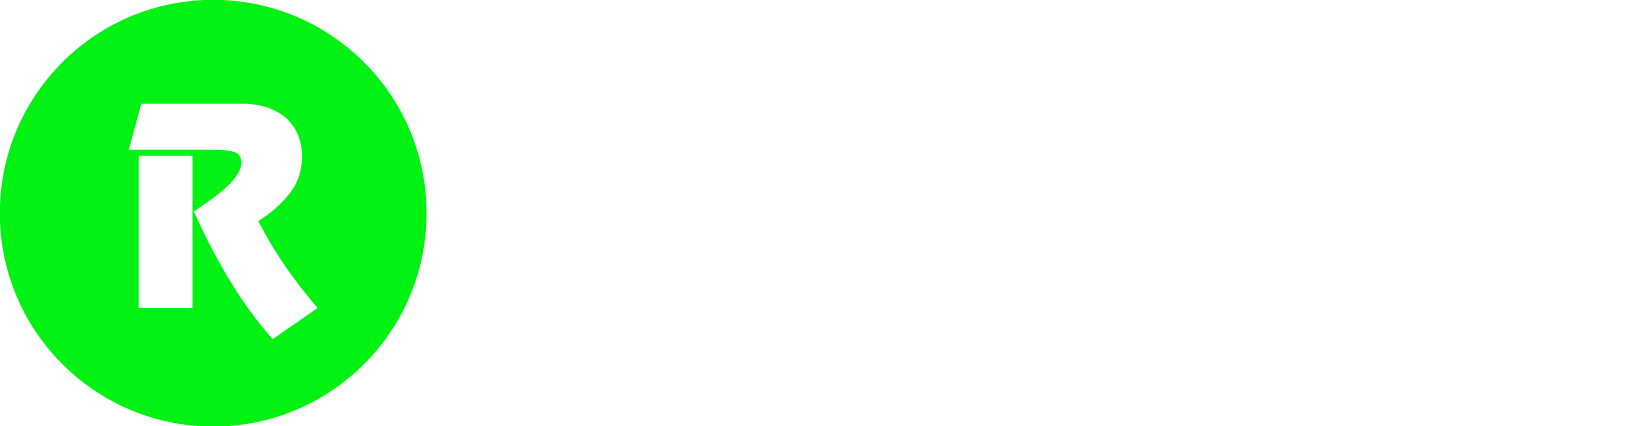 Roger Steen Crash Repairs